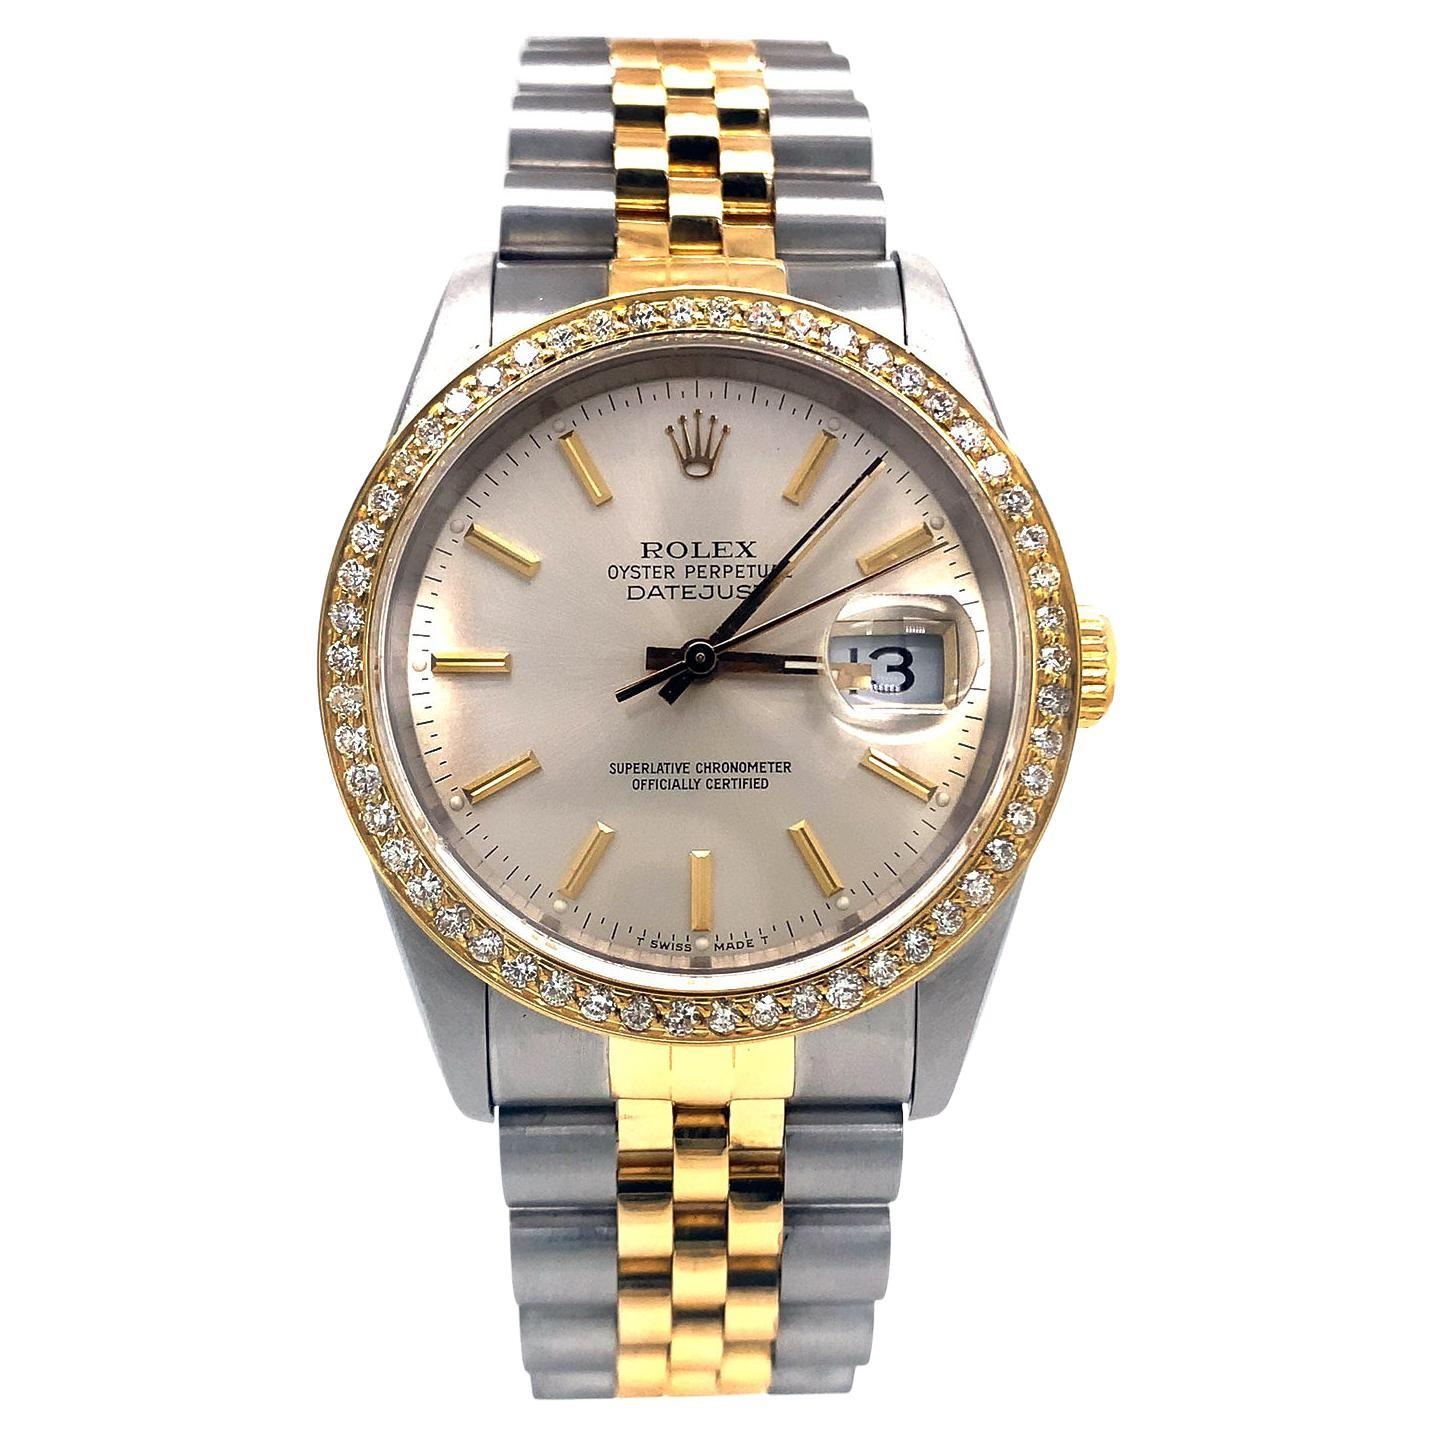 Rolex Datejust Gold & Steel Automatic Men's Oyster Perpetual Watch 16233